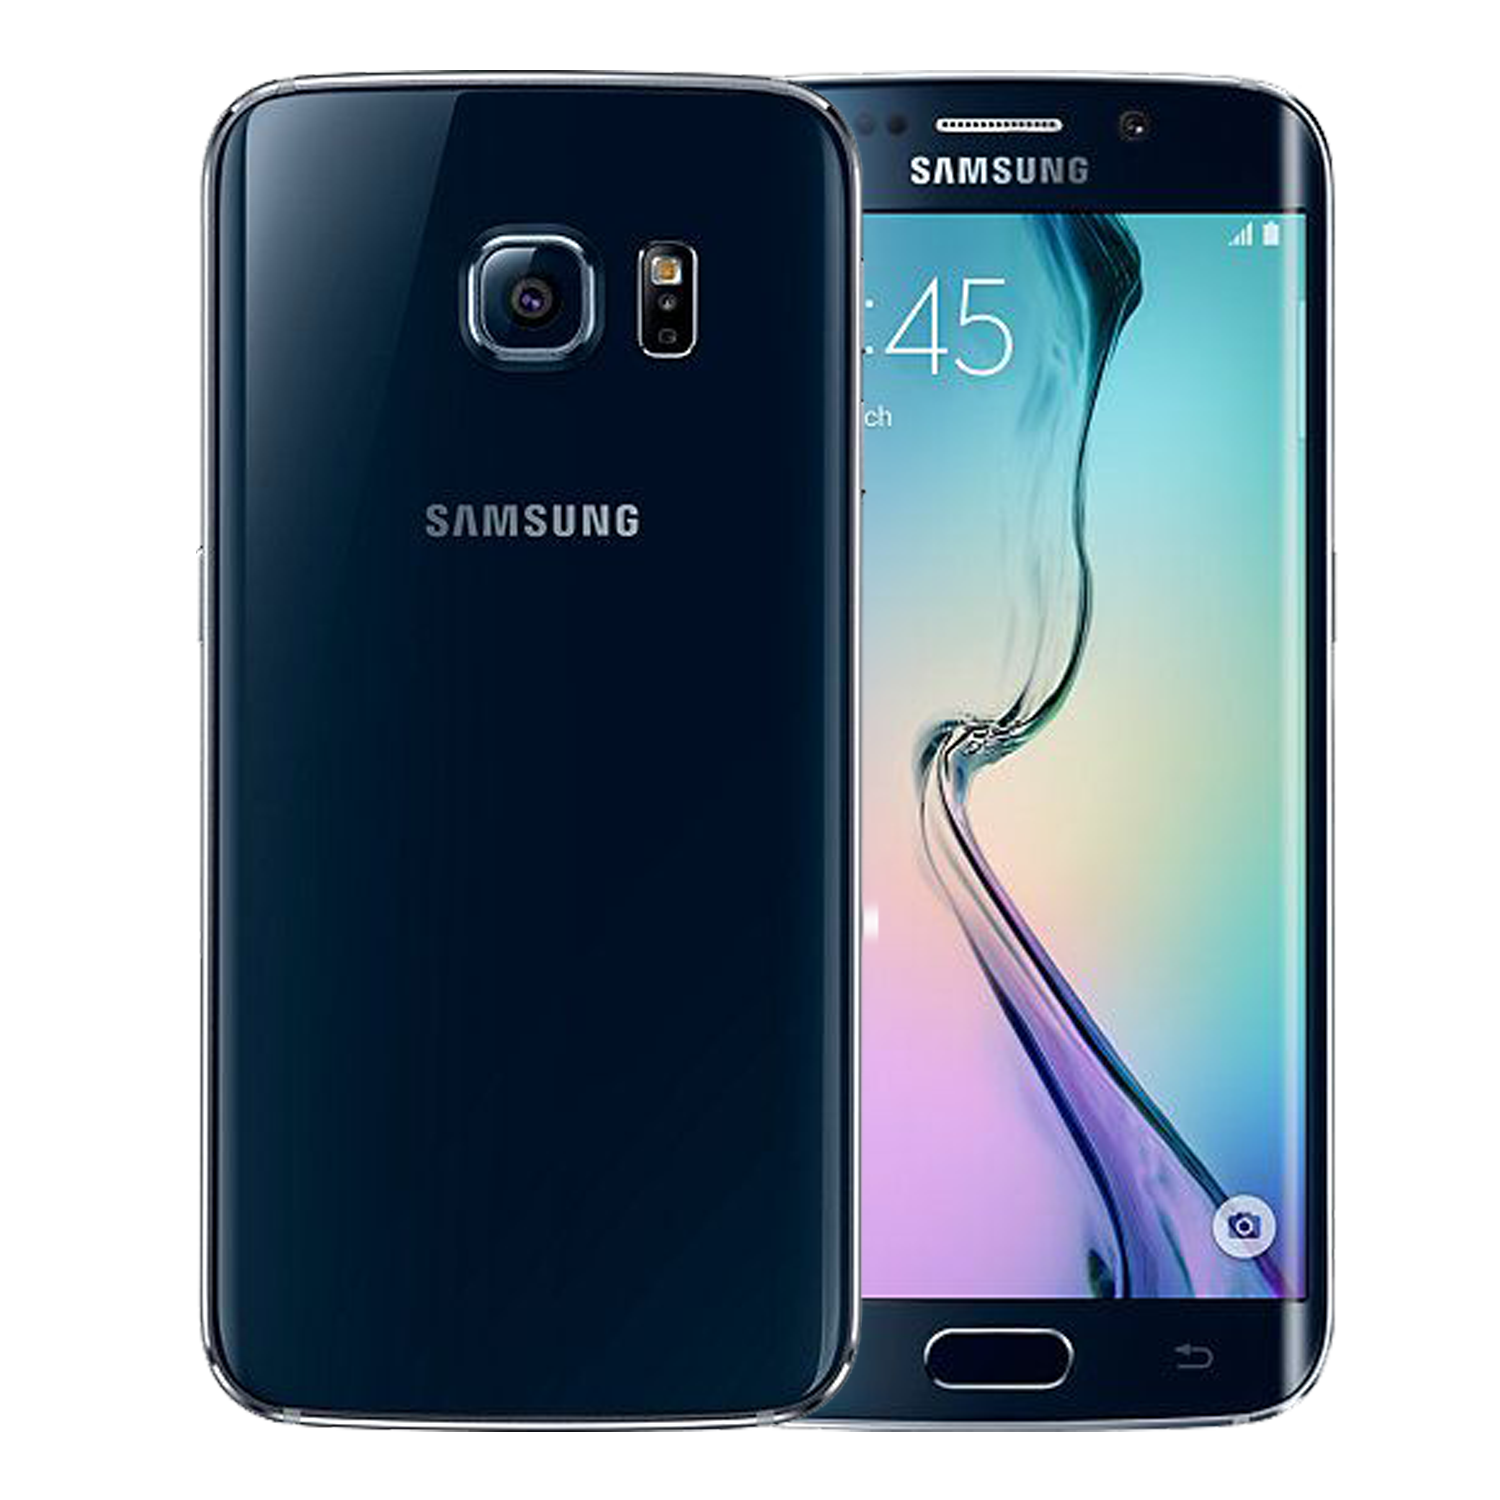 554de8a1246 Buy Samsung Galaxy S6 Edge Single Sim - 64GB